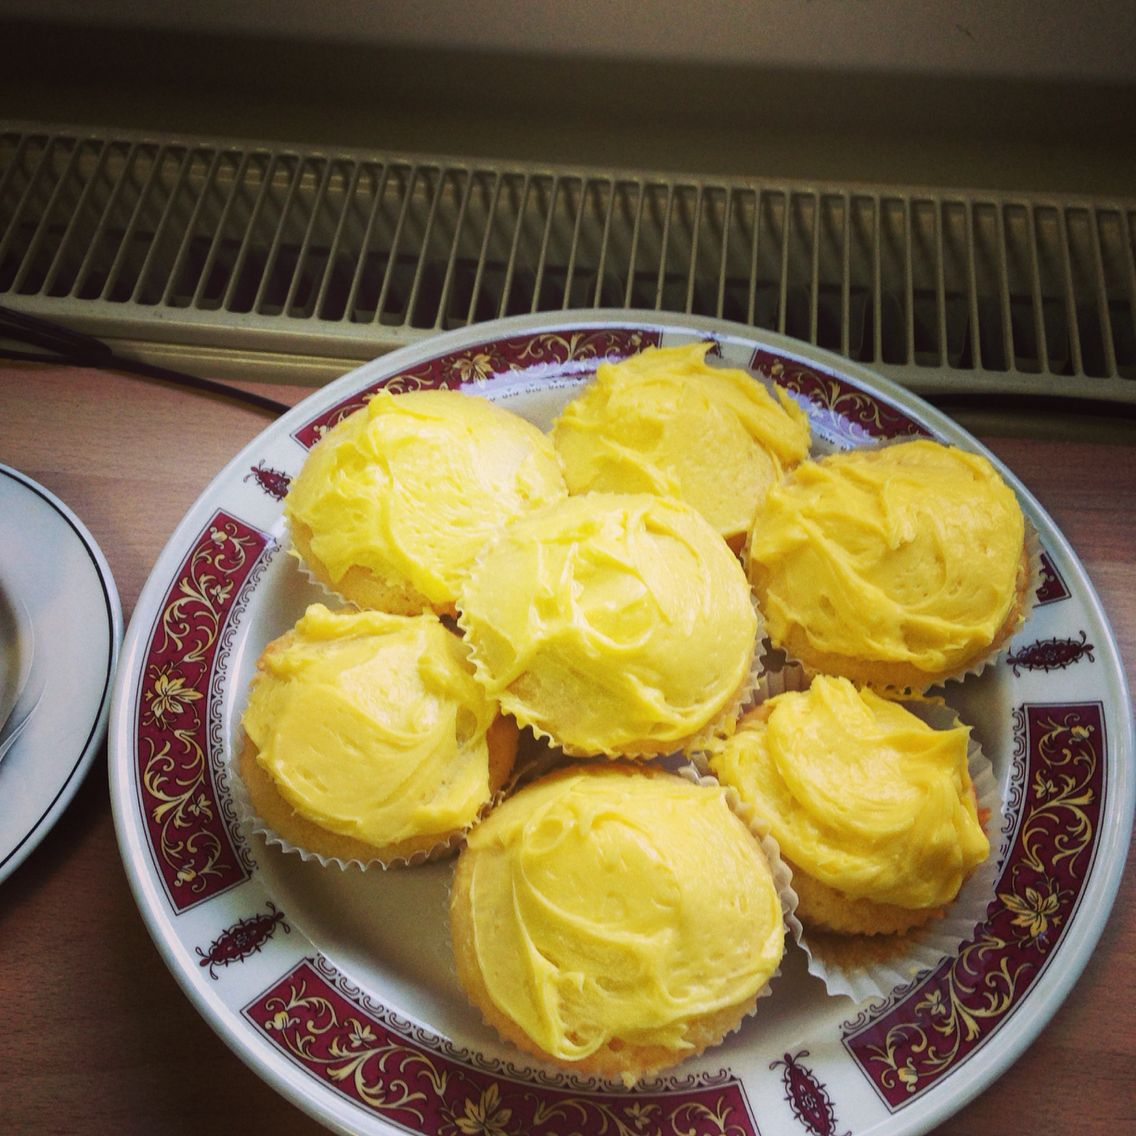 My lemon cupcakes. Presentation is not my strong point but these looked quite good!